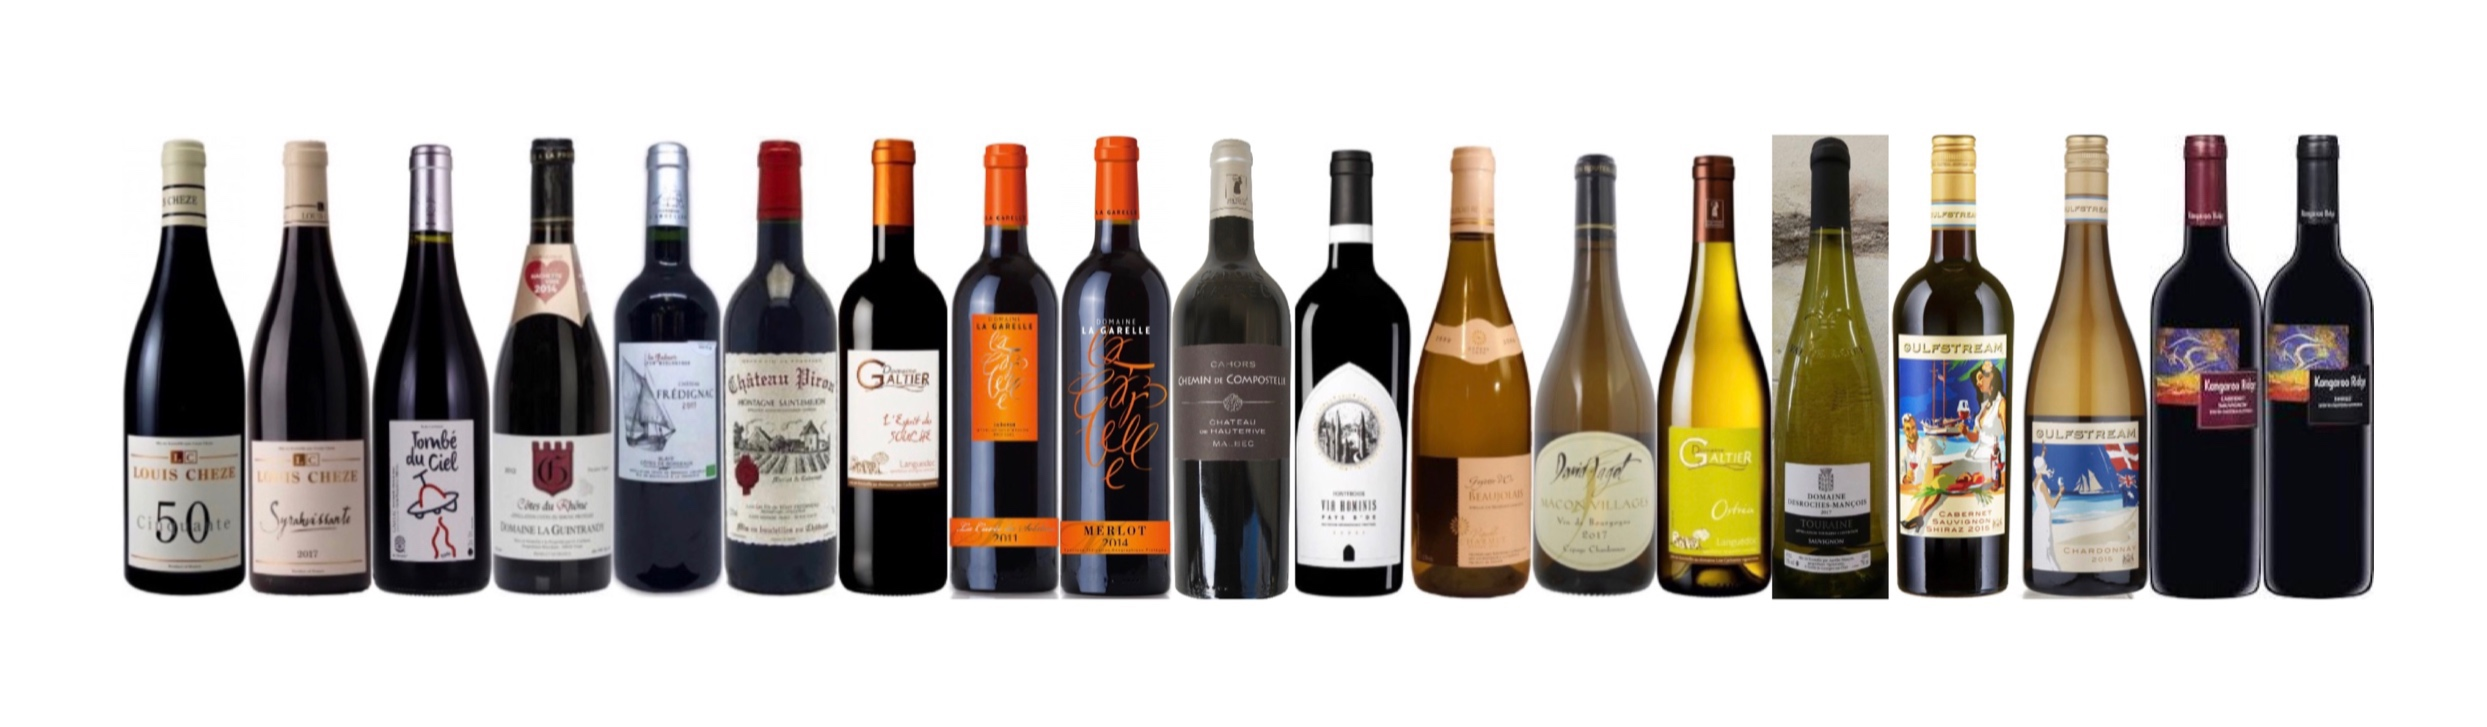 30% off and Personalised Your Own Wine Bundle till End of September!